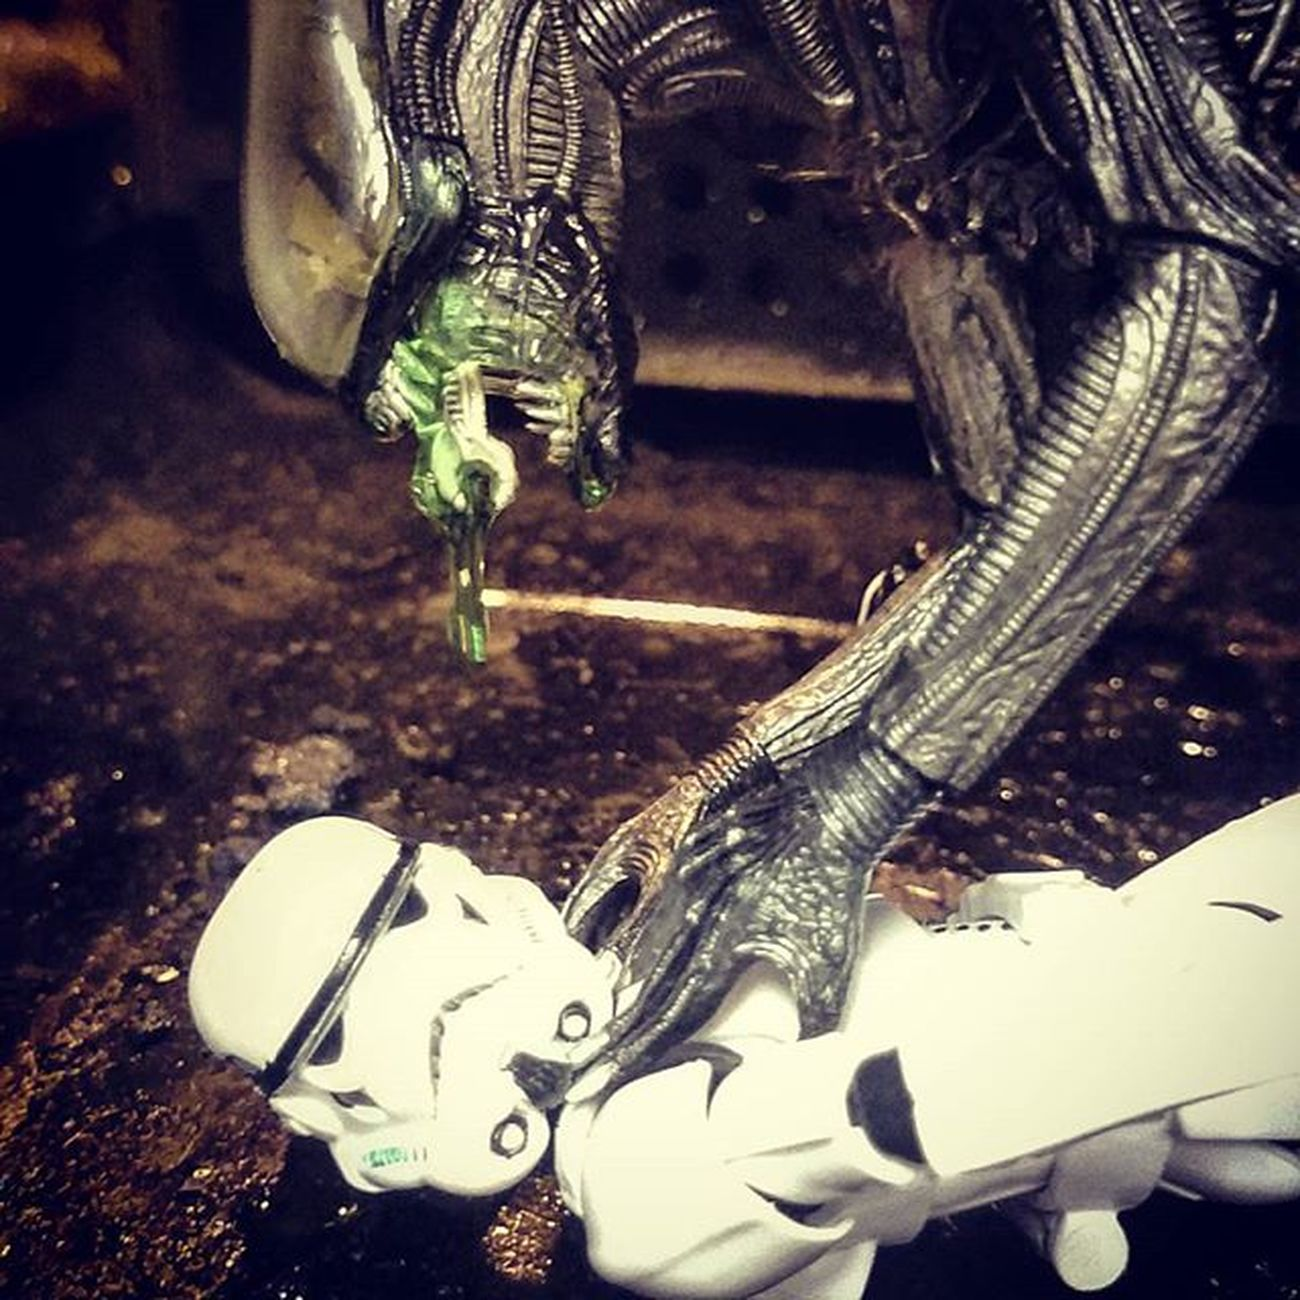 Not the best shot, just trying to get some realistic slobber! Normanthetrooper Geoffthexenomorph Toyoutsiders @toyoutsiders Toyphotography Toyslagram_Starwars Toyunion Toydiscovery @toydiscovery Justanothertoygroup Starwarselite @starwars_3lite Starwarsblackseries Stormtrooper Xenomorph Tgif_toys @tgif_toys